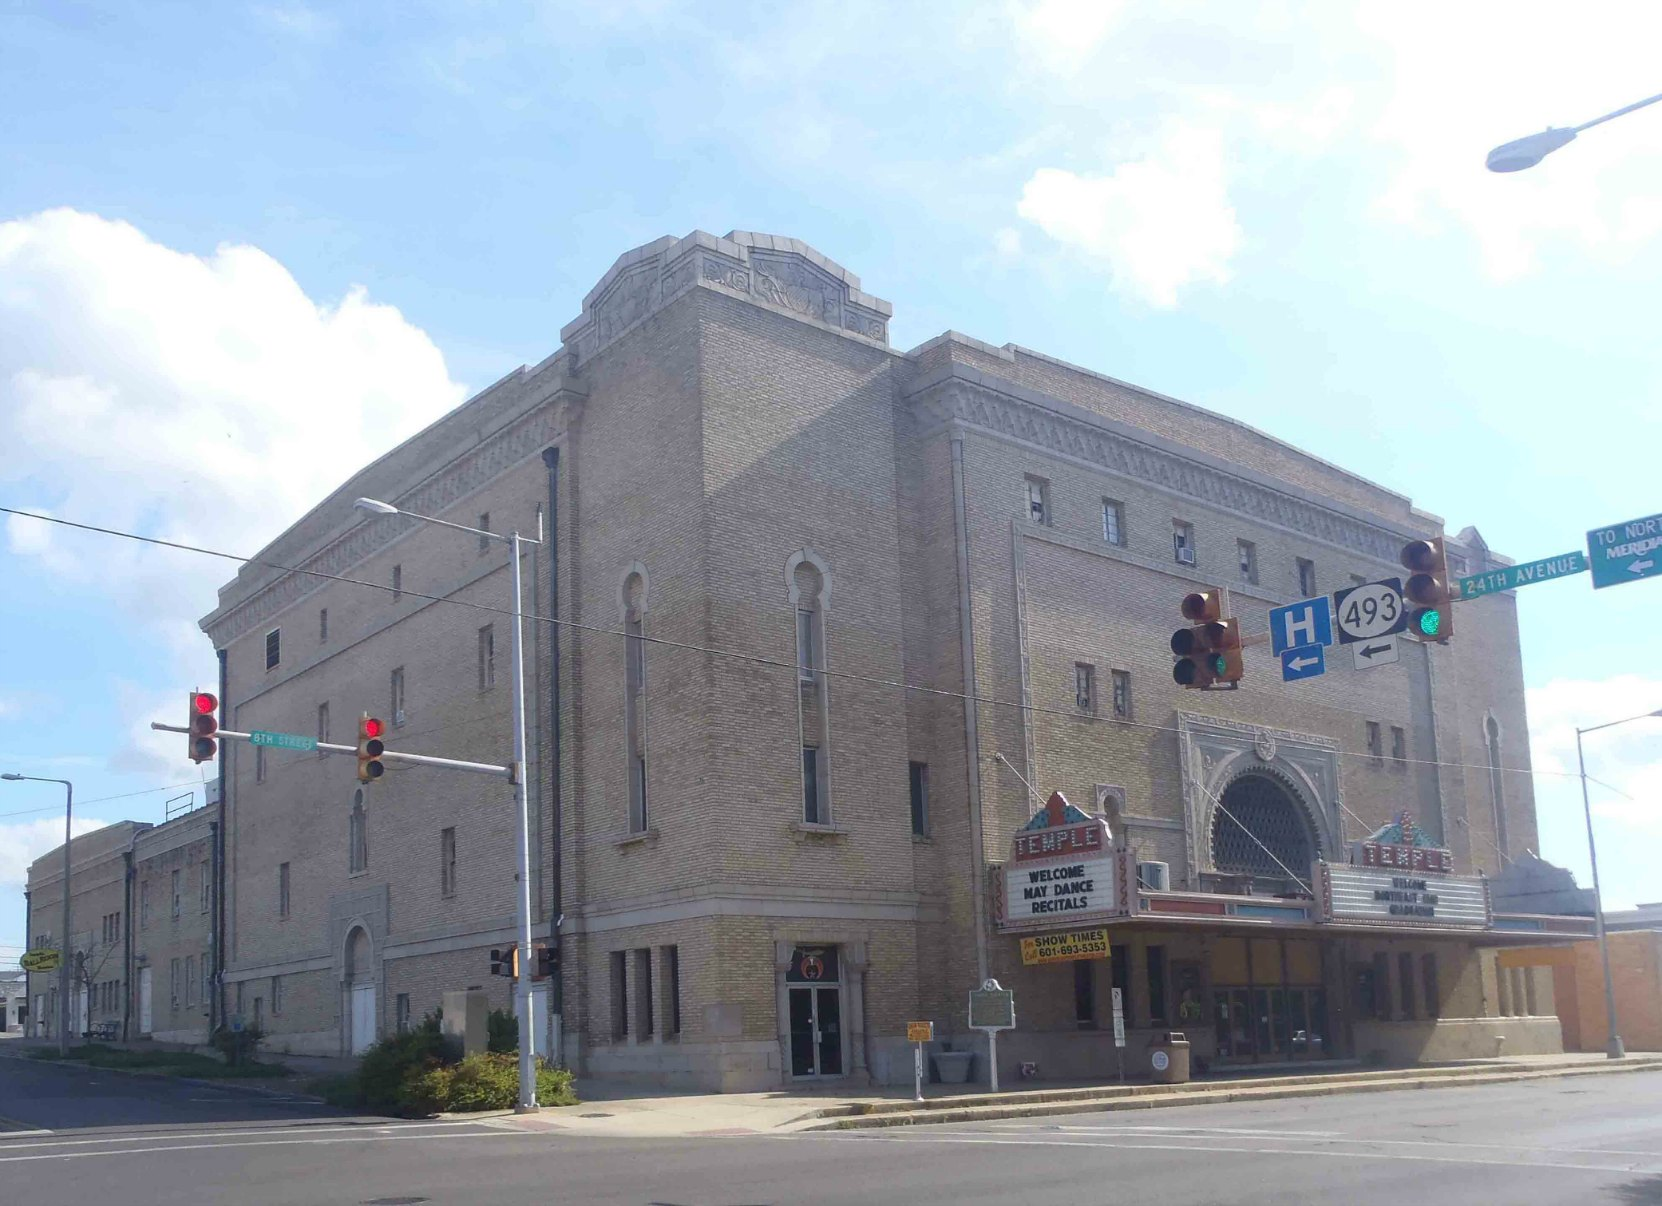 The Temple Theatre, Meridian, Mississippi.